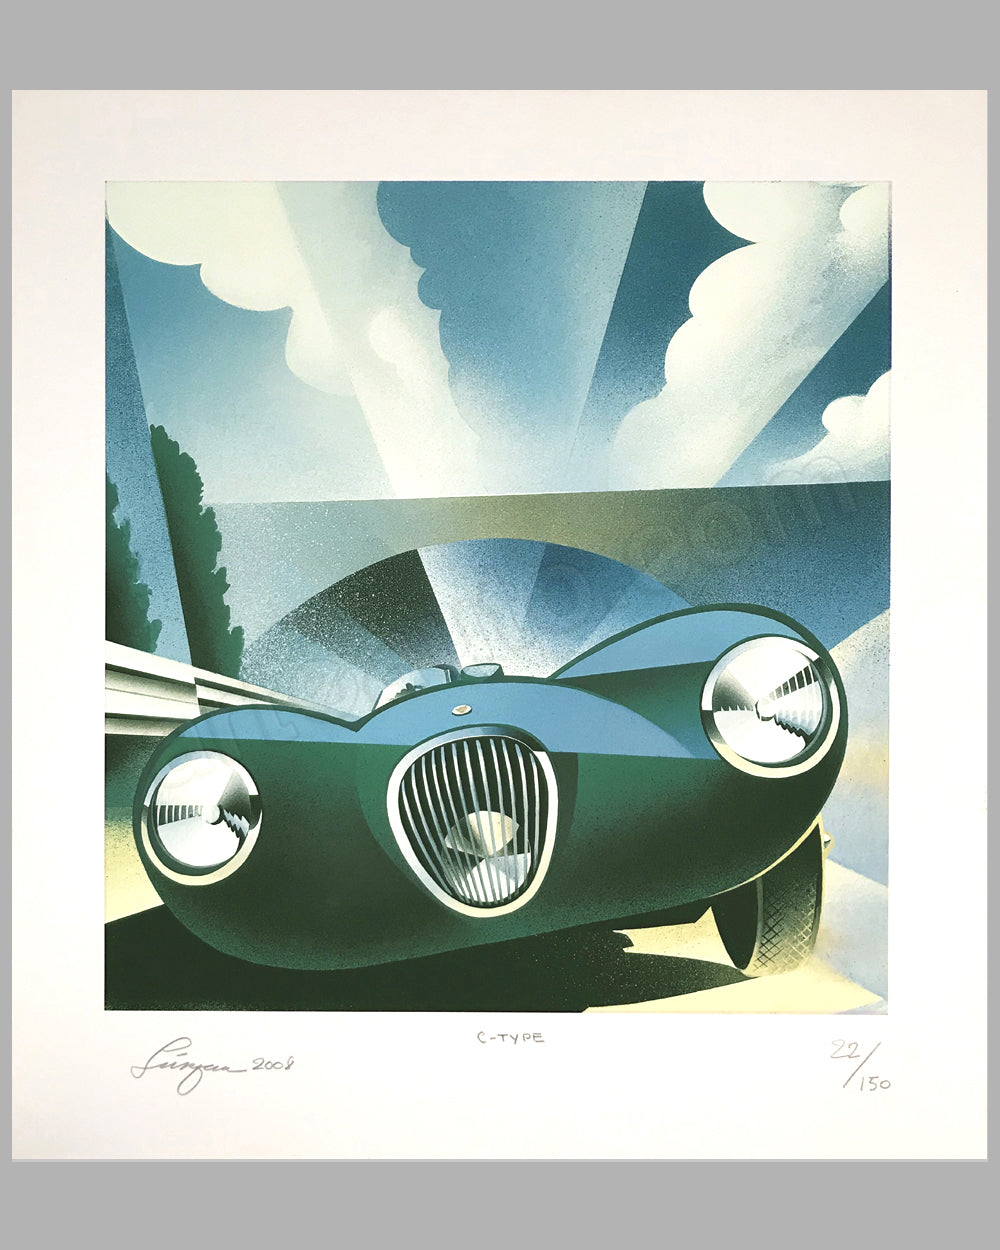 Jaguar C-Type giclée by Alain Lévesque